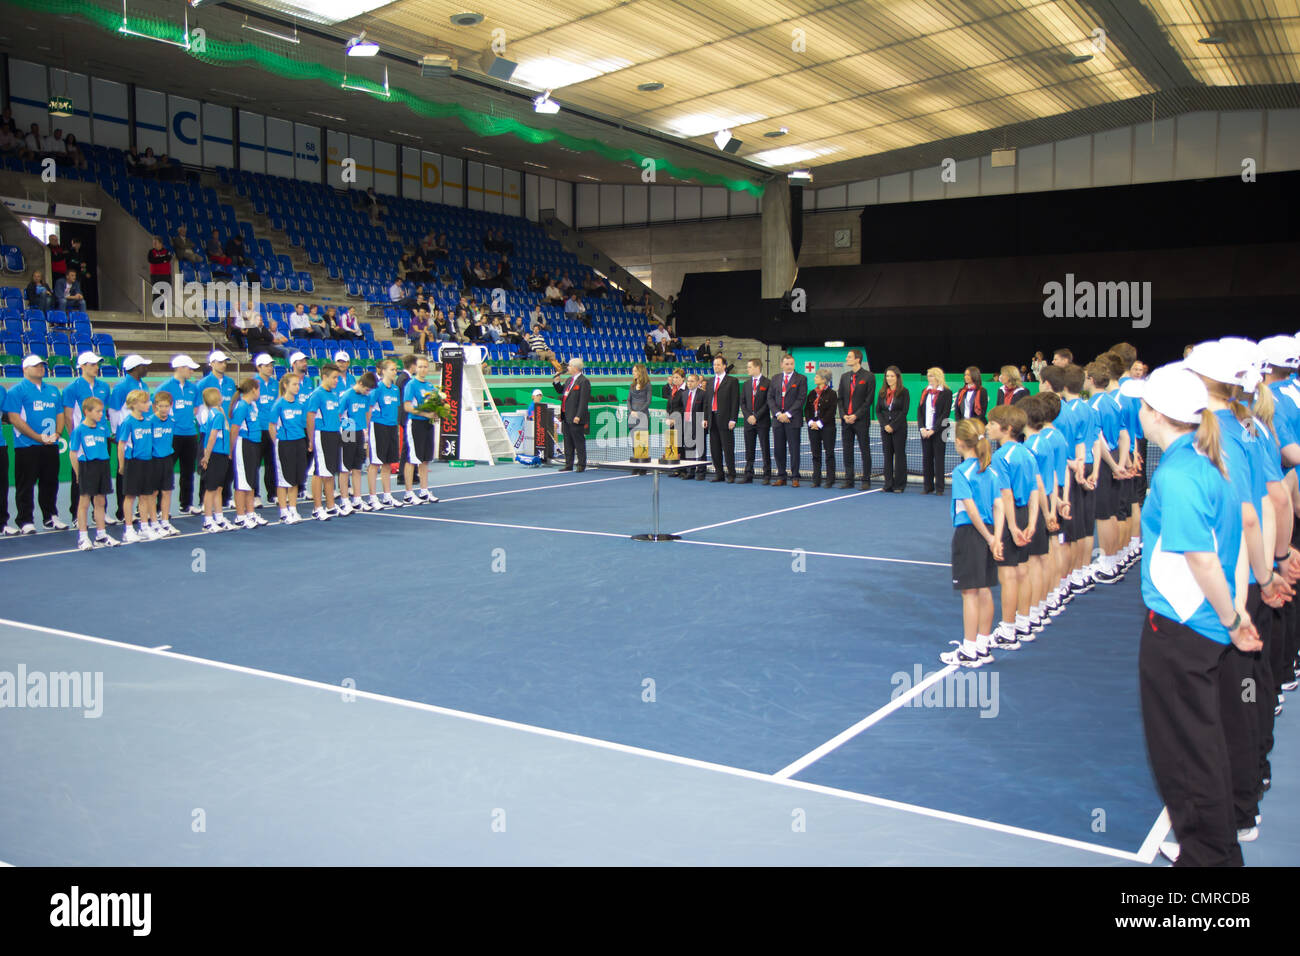 Officials, sponsors, linesmen and ball kids line up for award ceremony at BNP Paribas Open Champions - Stock Image